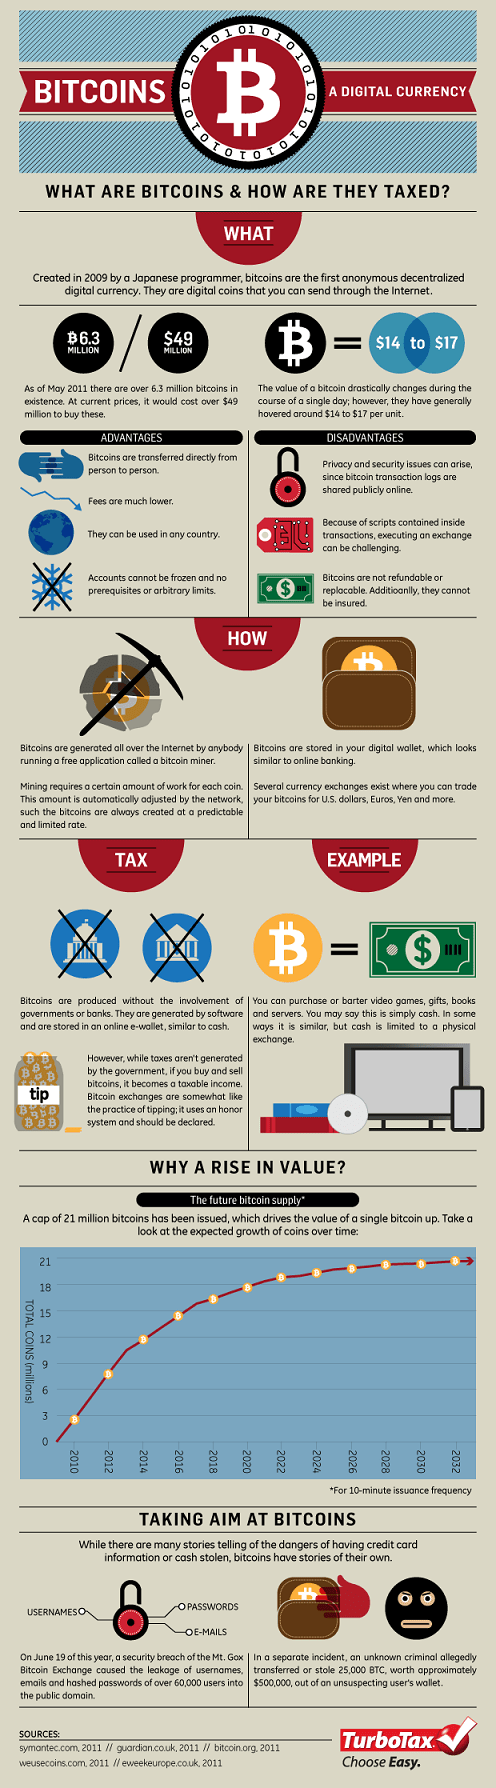 Bitcoins — The Taxless Currency